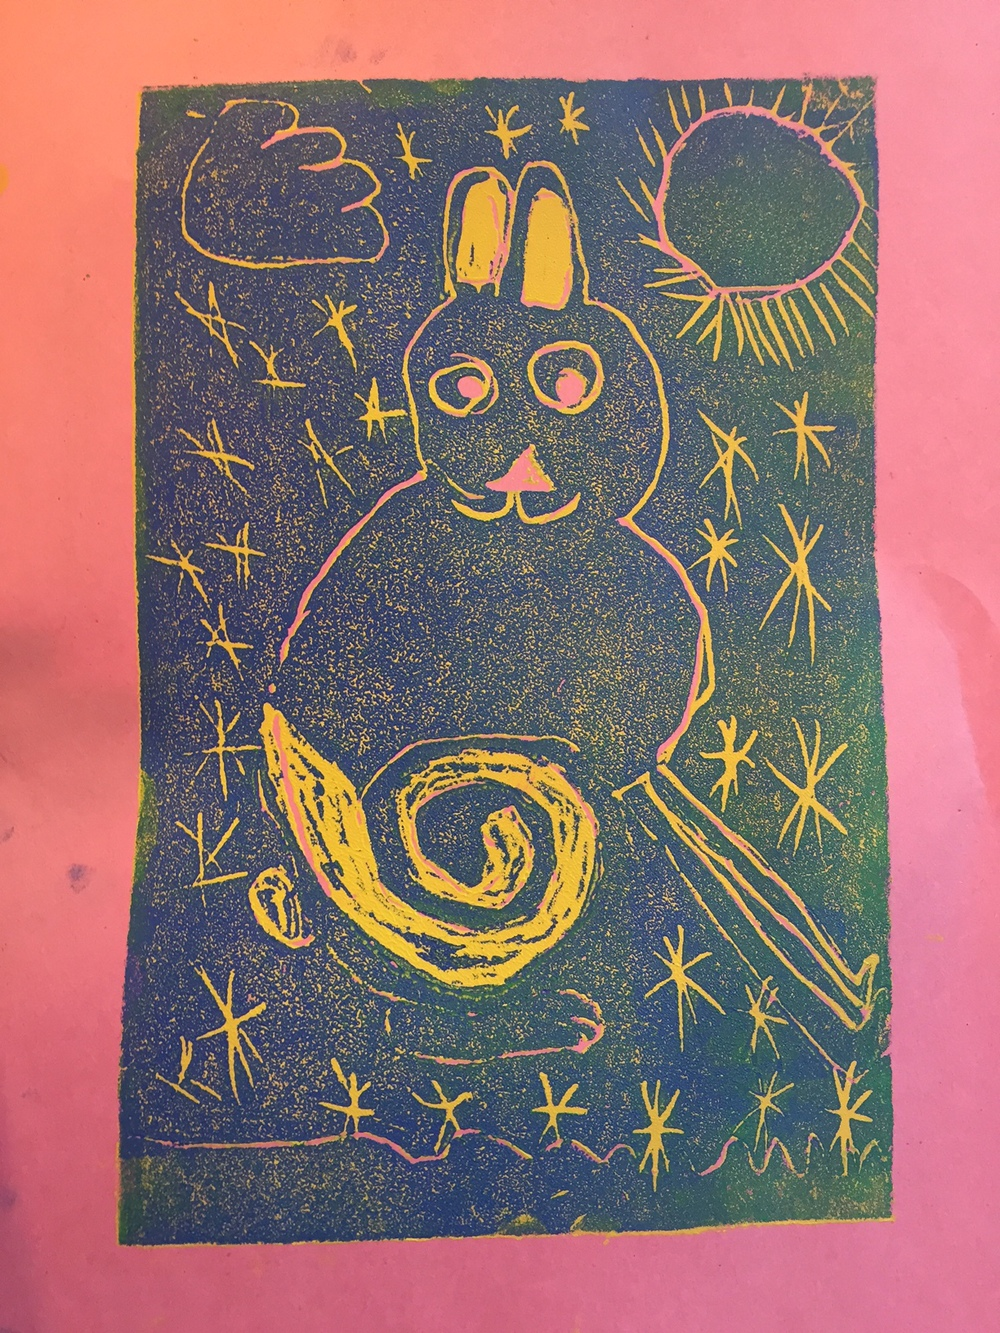 Beautiful arctic hare print inspired by Kenojuak Ashevak.